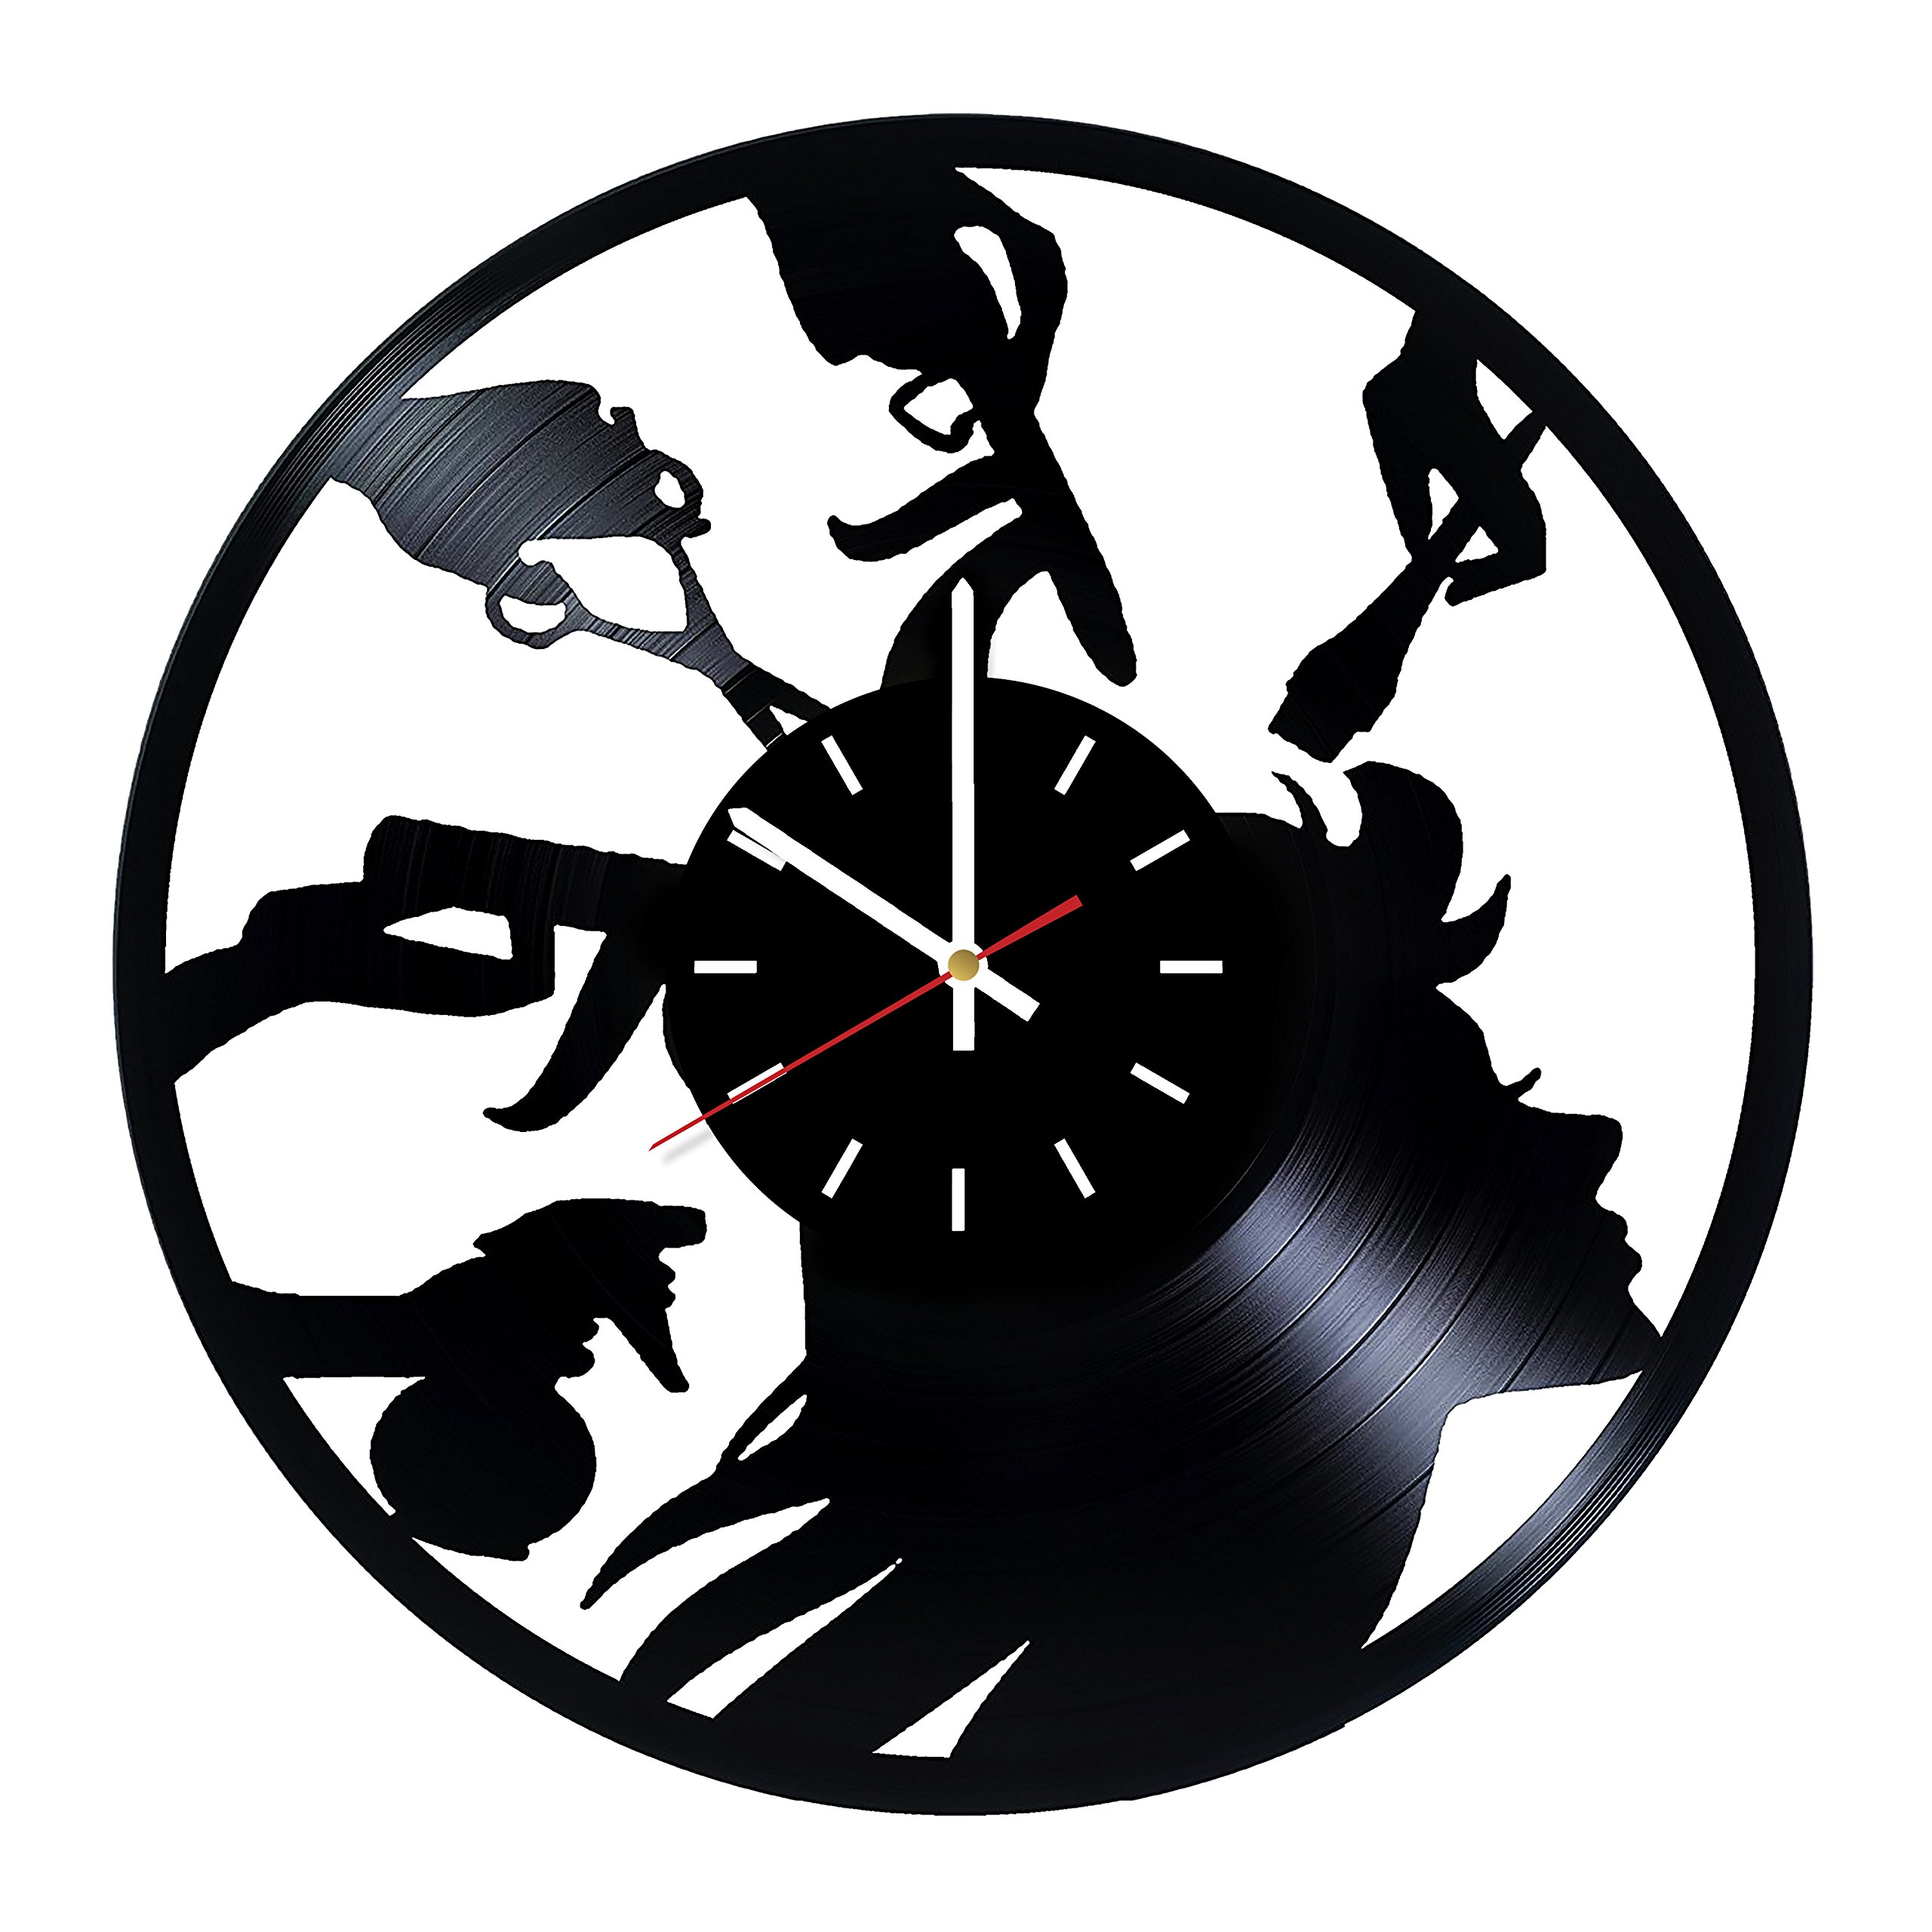 Everyday Arts Beauty Salon Vinyl Record Wall Clock - Get Unique Bedroom or Garage Wall Decor - Gift Ideas for Friends, Beauty Salon Unique Modern Art